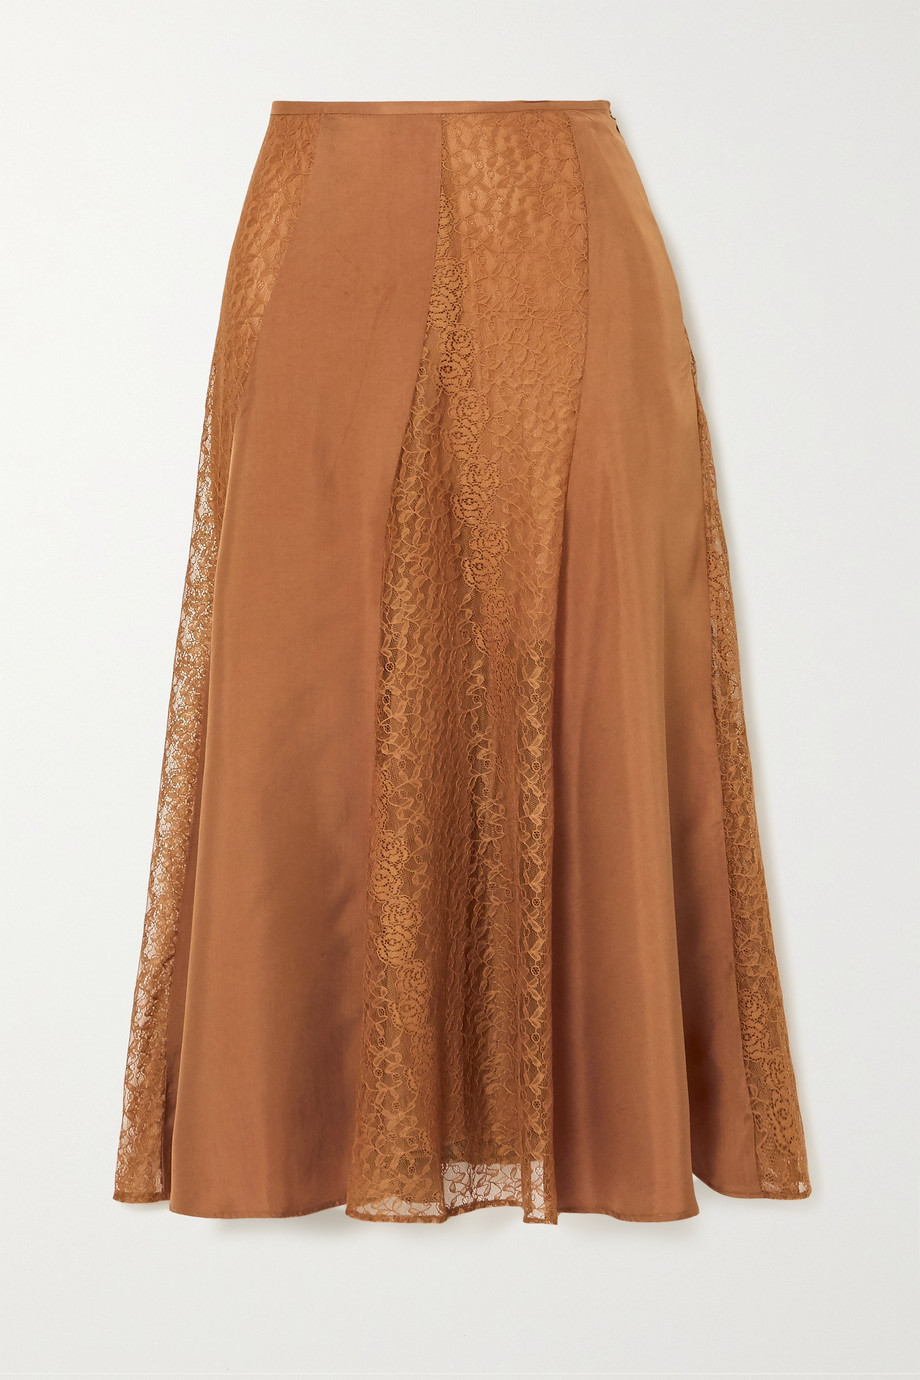 BY MALENE BIRGER Stelma satin and lace midi skirt